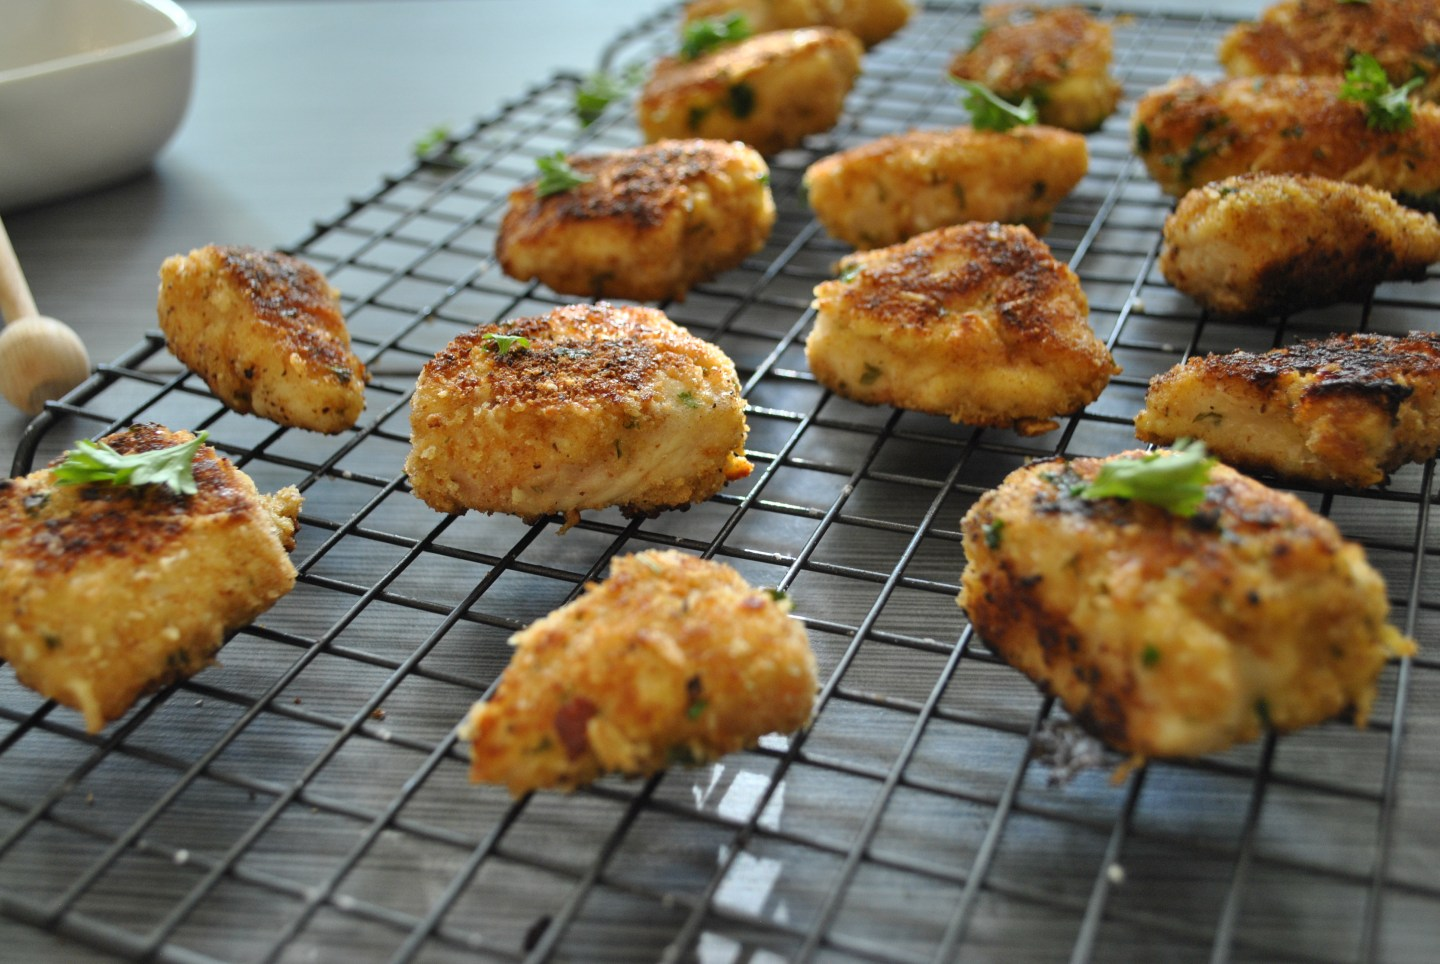 Lifestyle Blogger Chocolate and Lace shares her recipe for Healthy Chicken Nuggets